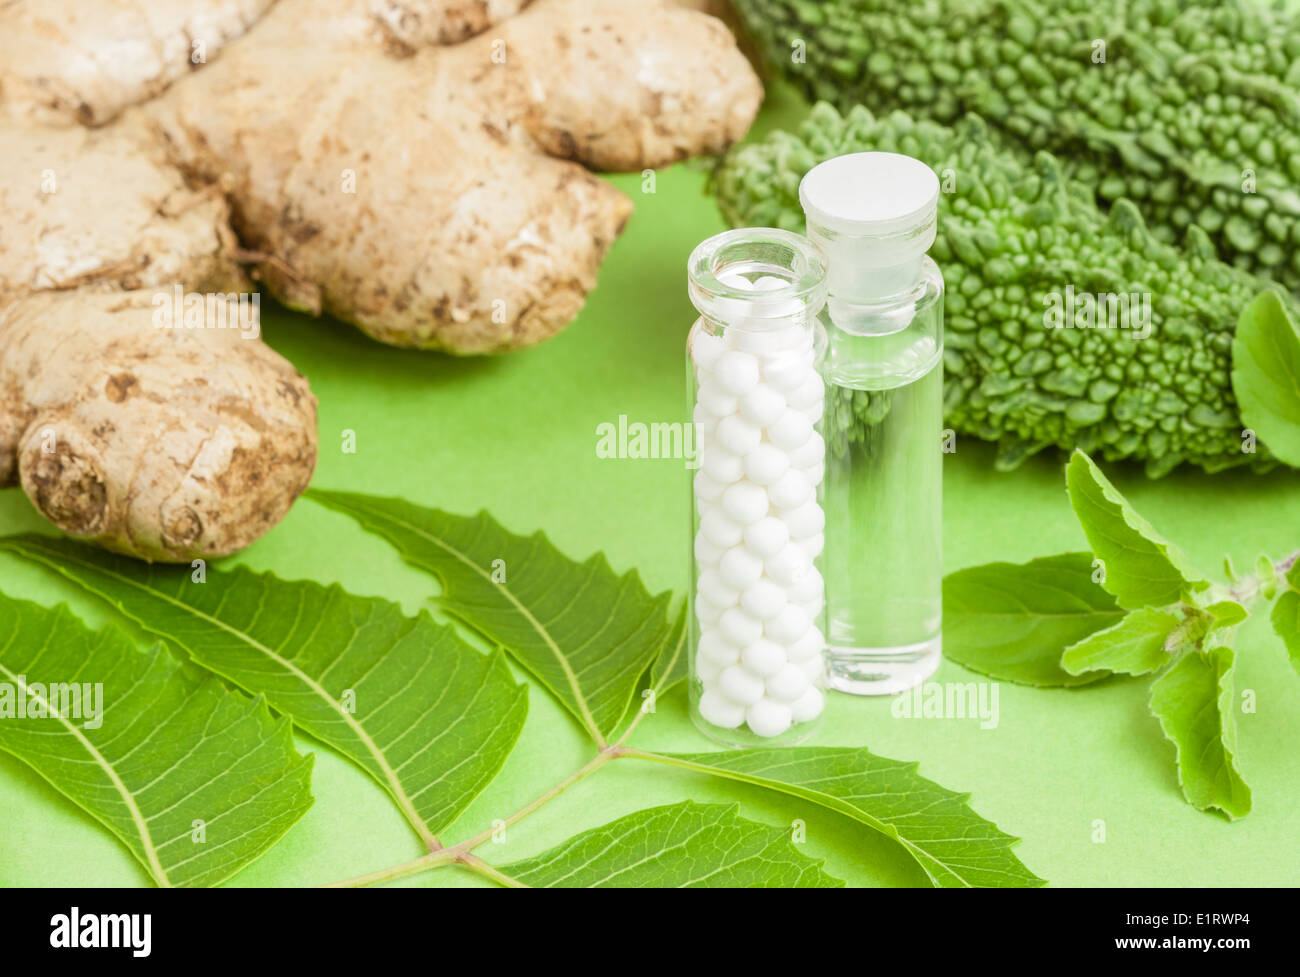 Homeopathic medicine (pills, liquid homeopathic extract) pictured with homeopathic herbs (ginger, bitter gourd, neem, basil). - Stock Image